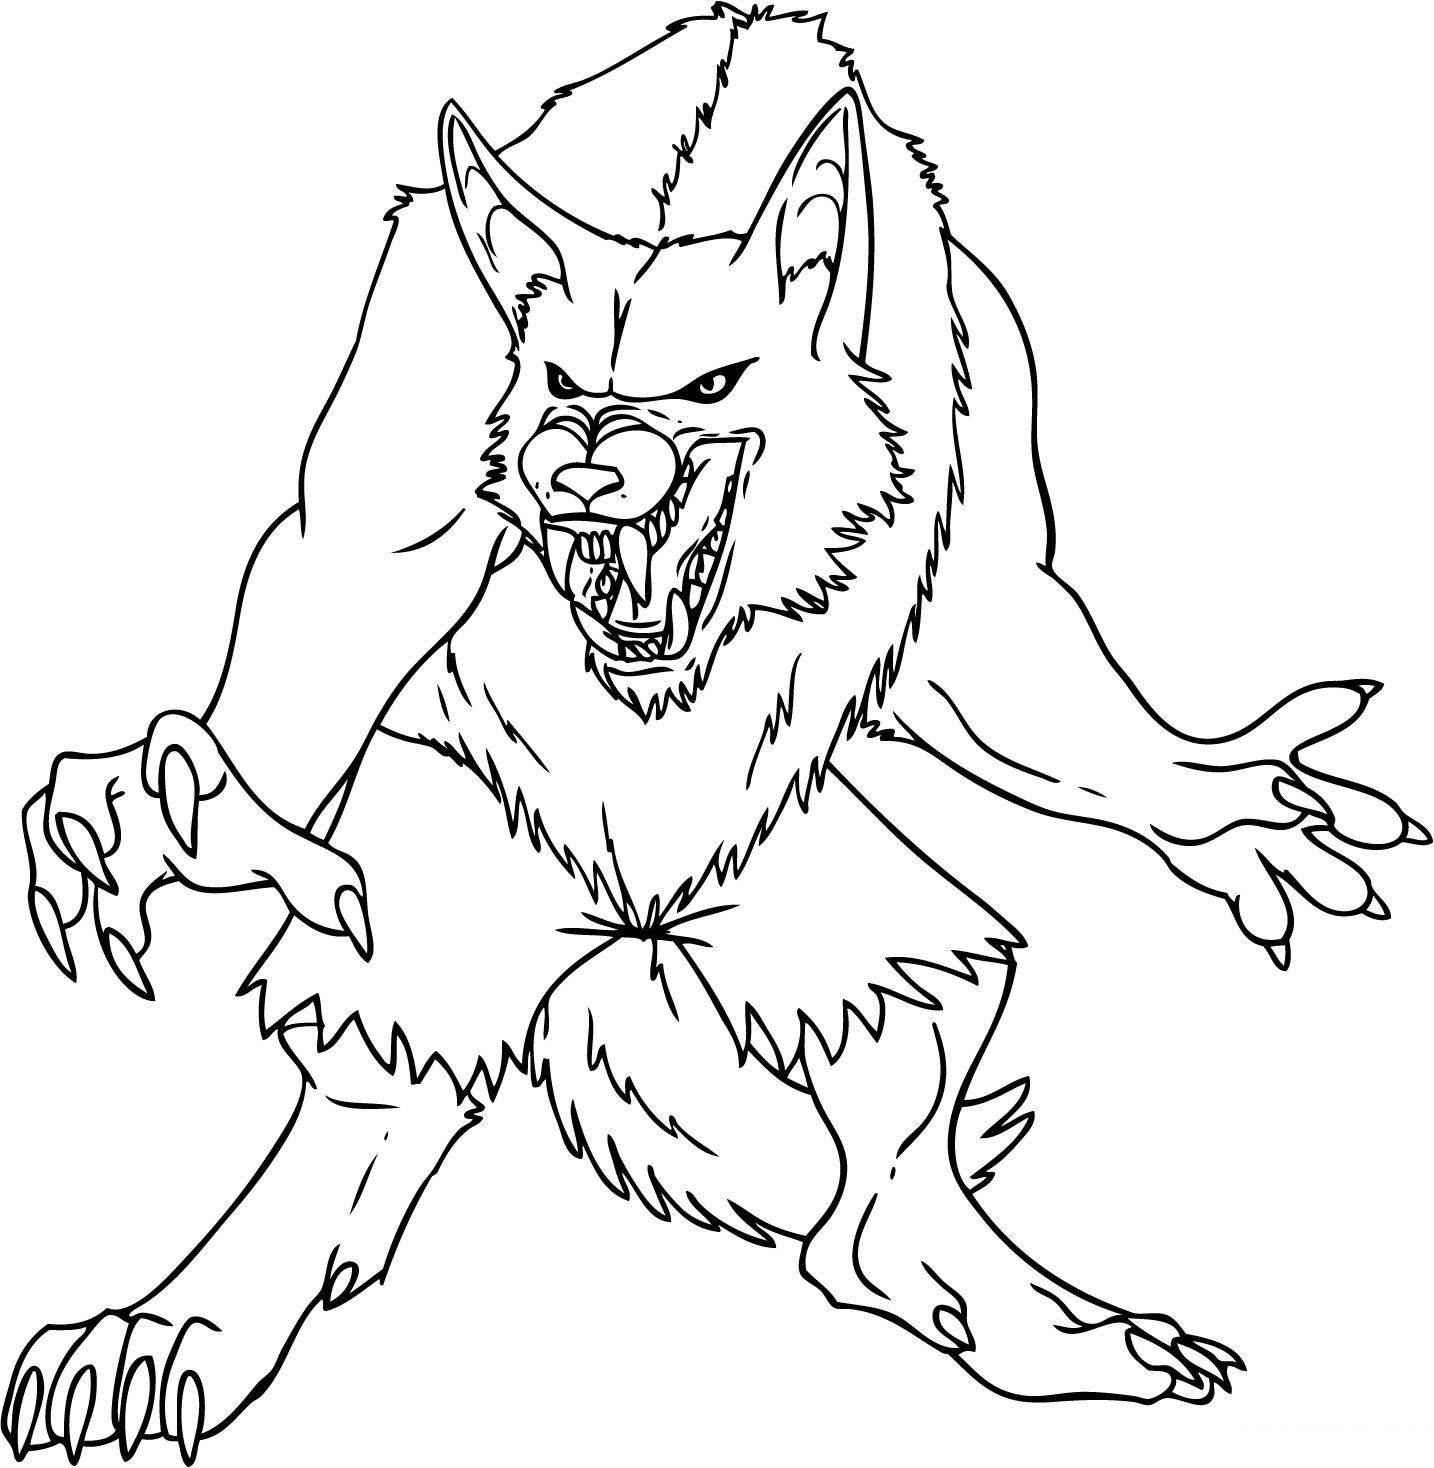 werewolf coloring page free werewolf coloring pages coloring home page werewolf coloring